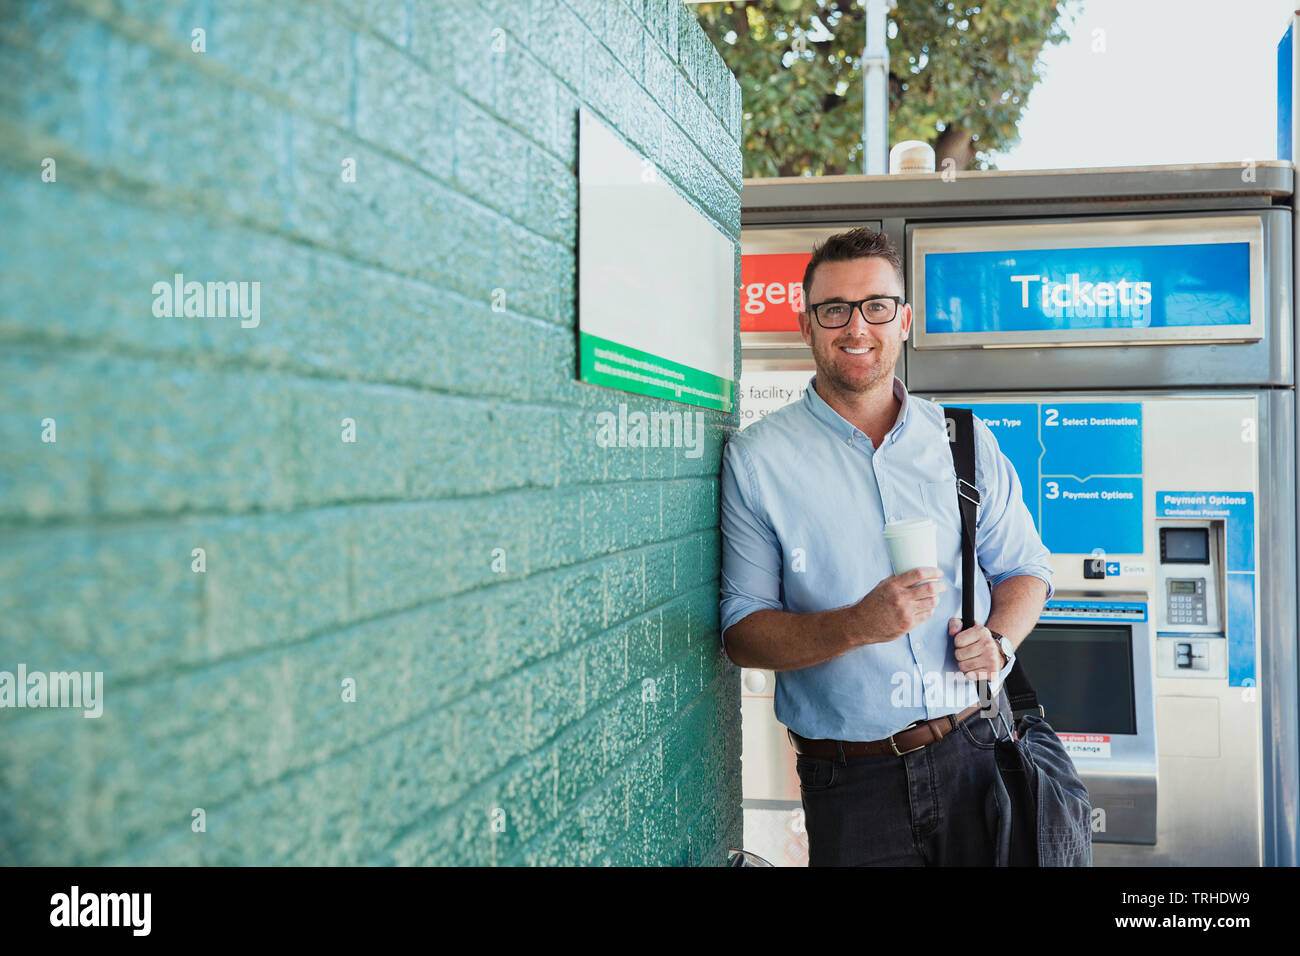 A front-view shot of a mid-adult caucasian businessman waiting at a railroad station platform with a cup of coffee in his hand, he is catching the tra - Stock Image